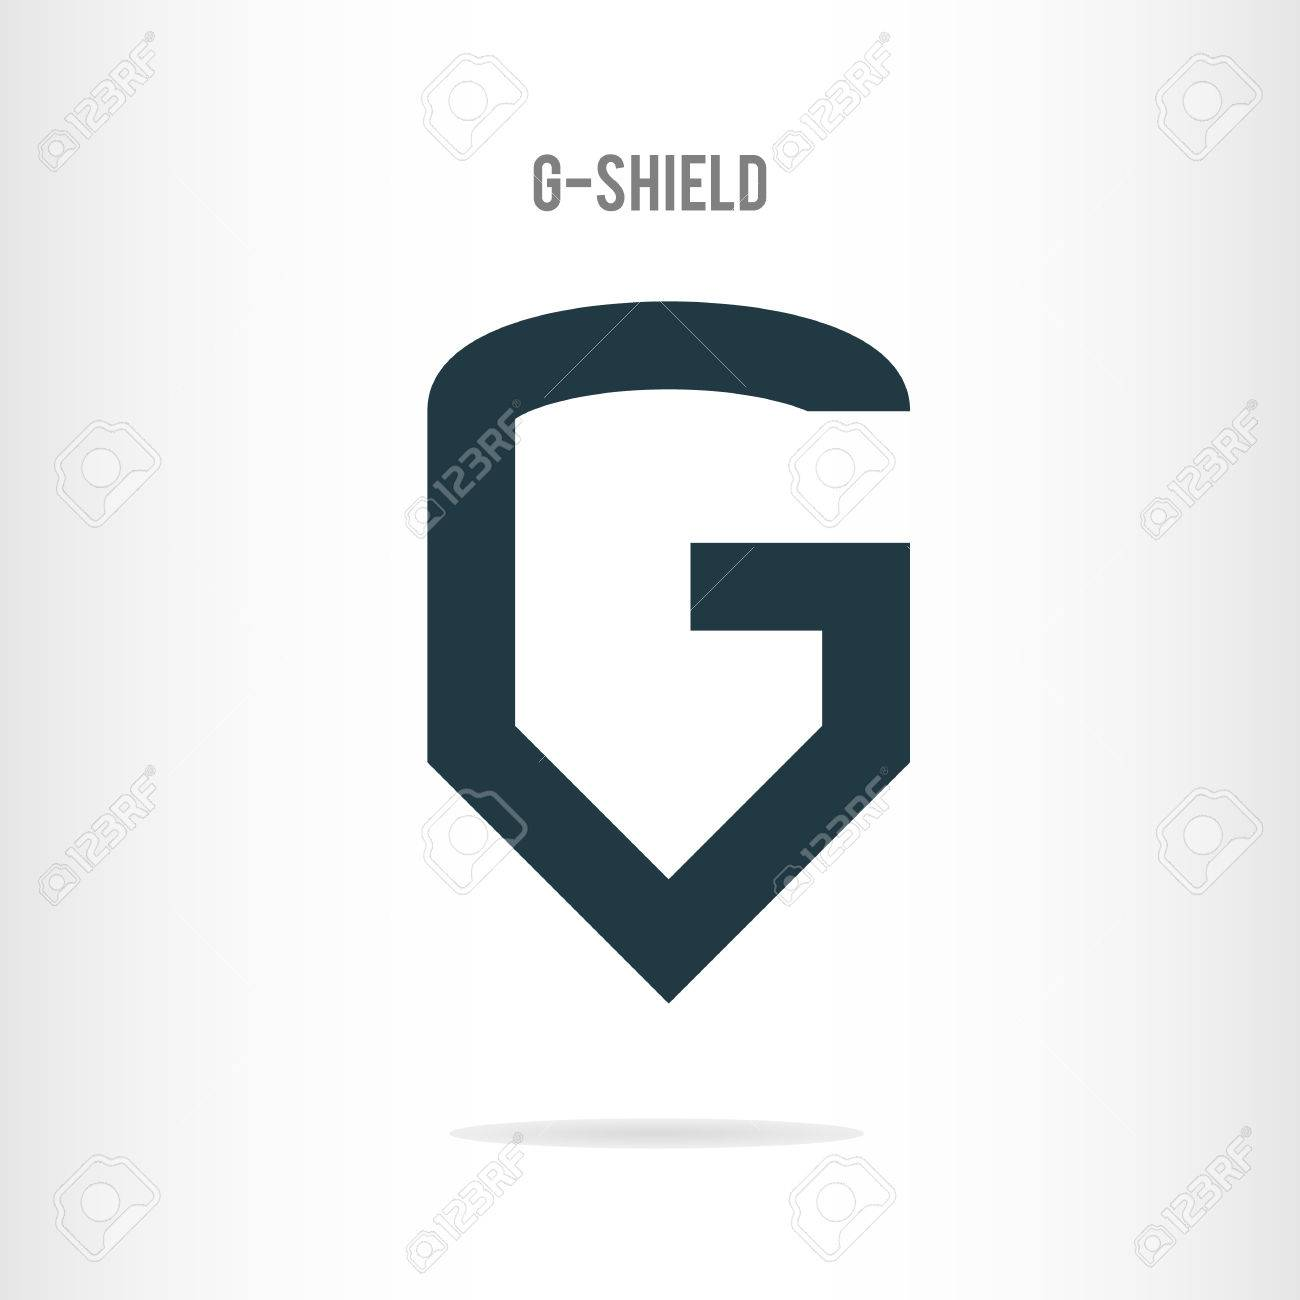 1300x1300 Letter G Logo Template. The Letter G In The Form Of Shield